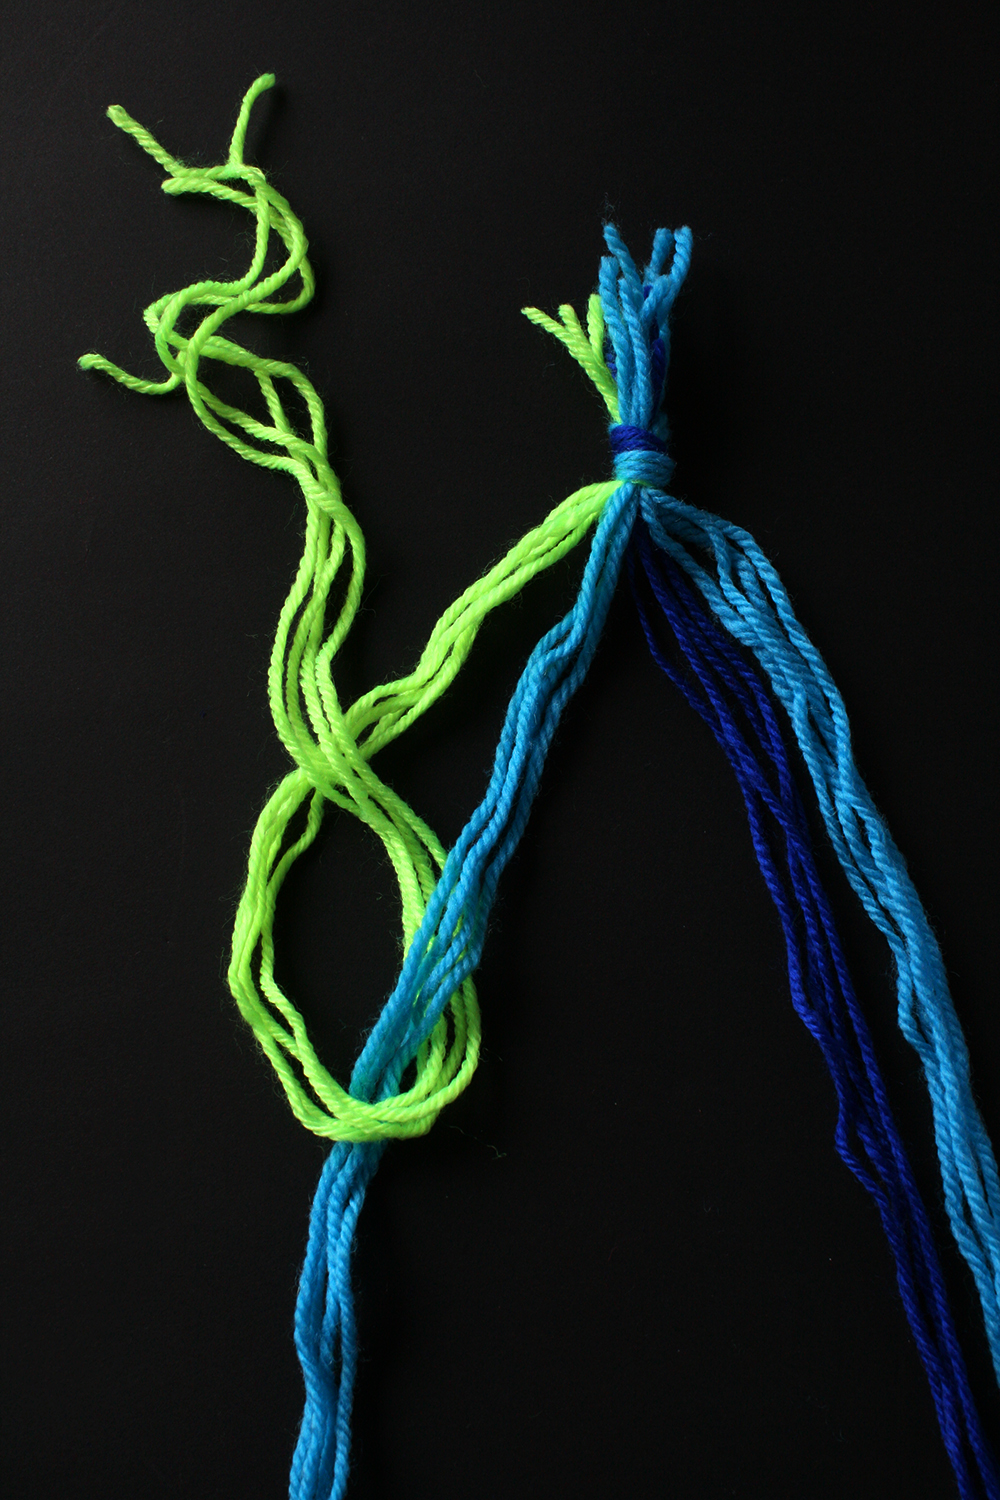 Step 6   This weaving technique is exactly like making a friendship bracelet, except much larger due to the multiple strands of wool. To start the weaving, knot the far left hand bunch of strands (in this case neon yellow) onto the second bunch. Repeat this knot.